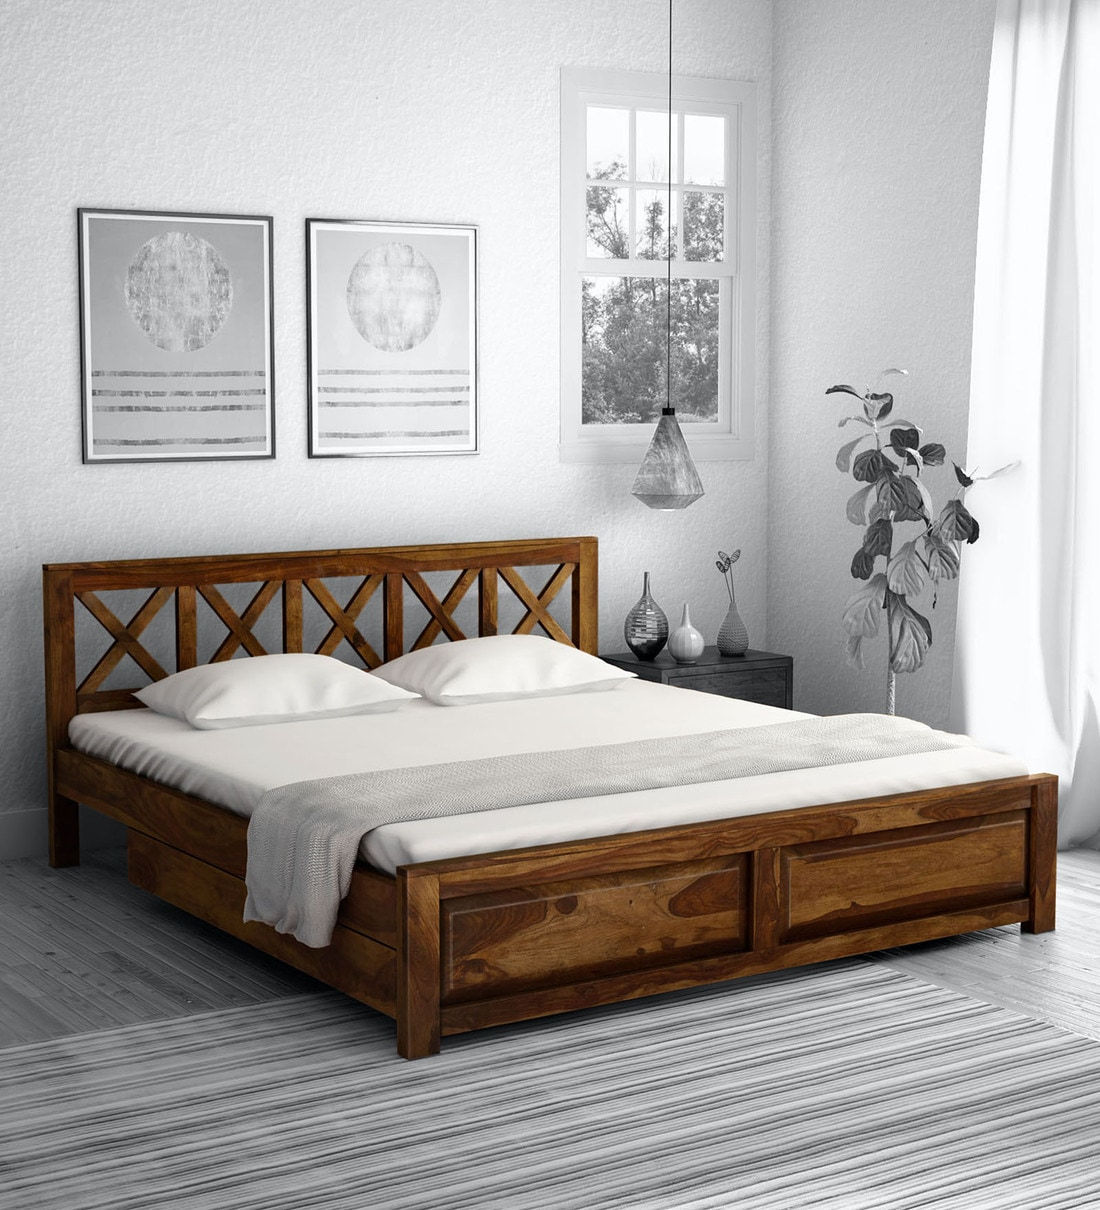 Buy Kryss Solid Wood King Size Bed With Storage In Provincial Teak Finish Woodsworth By Pepperfry Online Transitional King Size Beds Beds Furniture Pepperfry Product